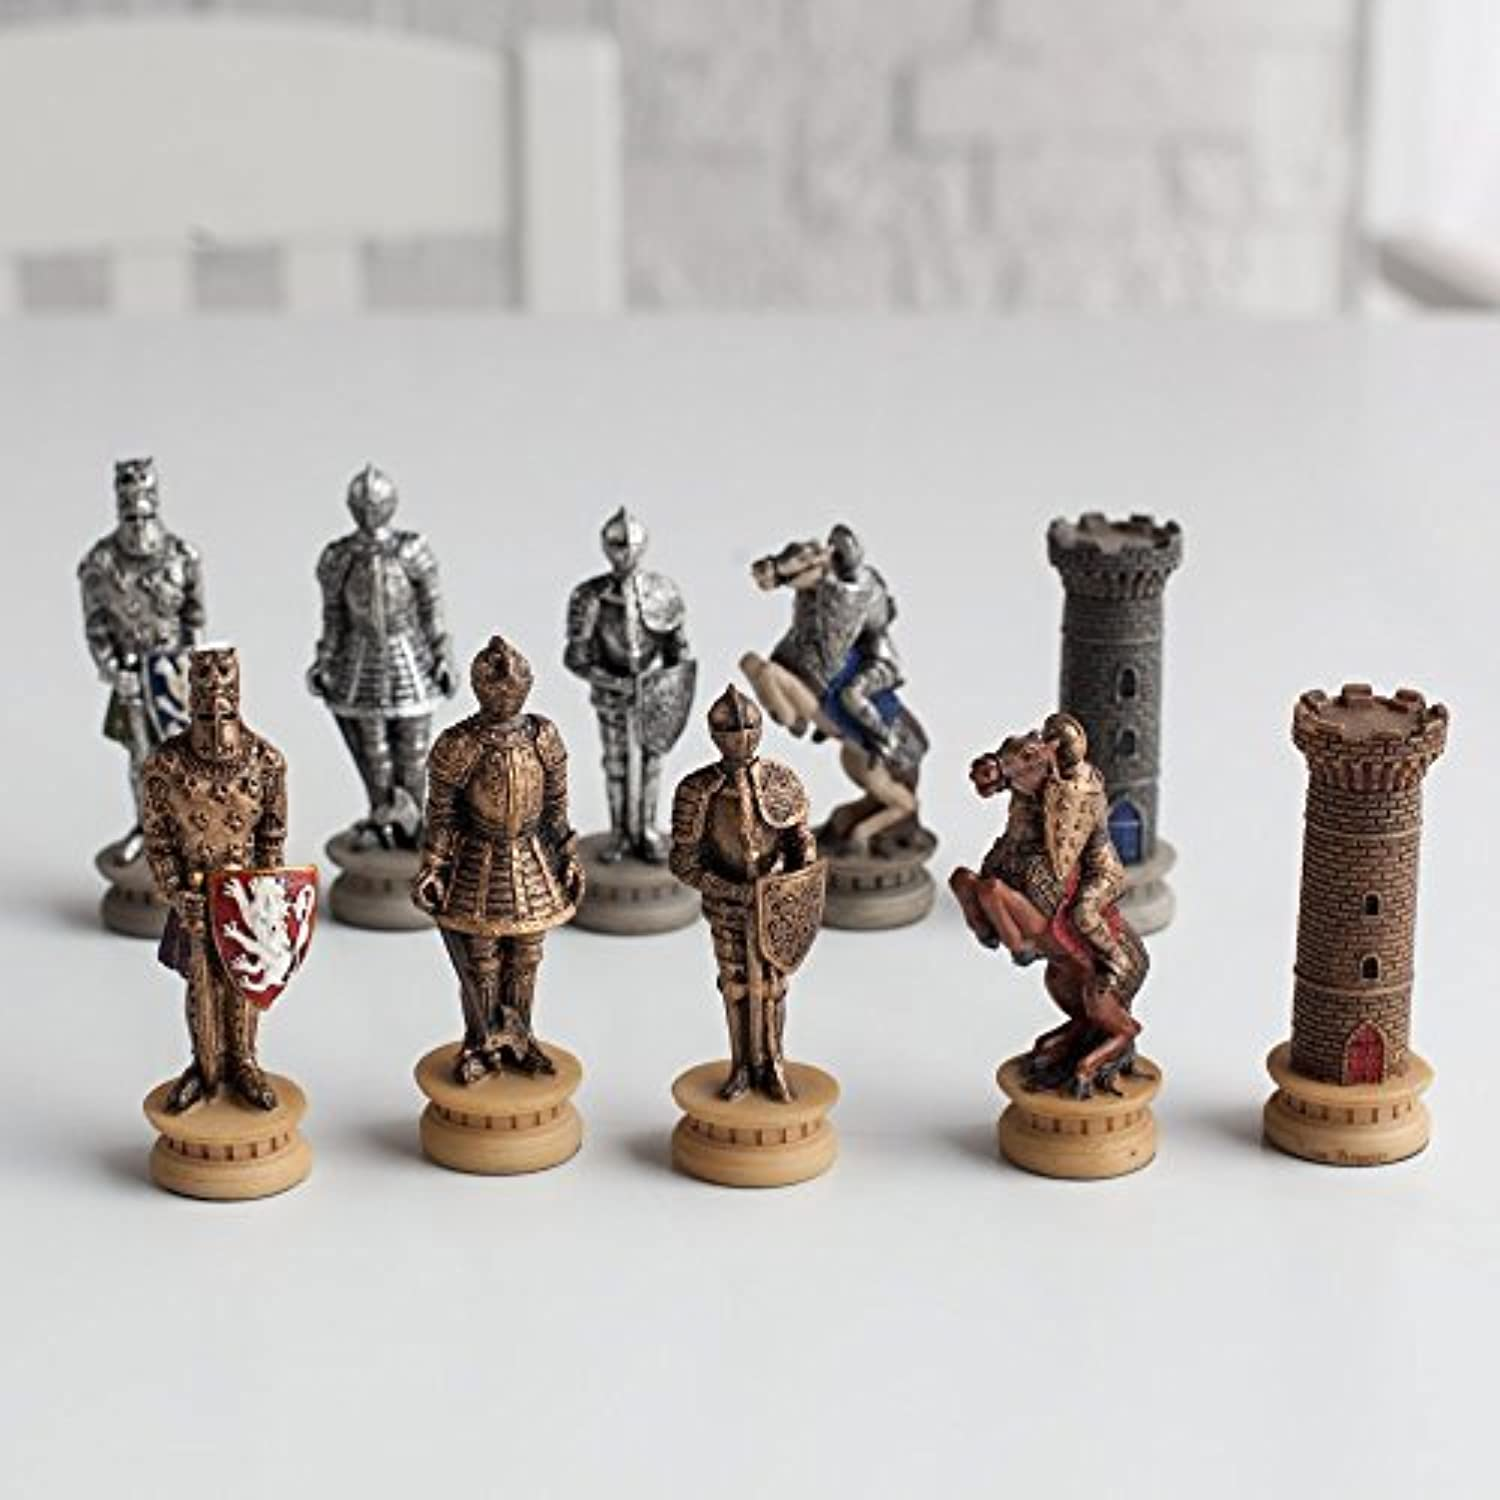 Medieval Times Armored Knights Painted Resin Chess Pieces by World Wise [並行輸入品]